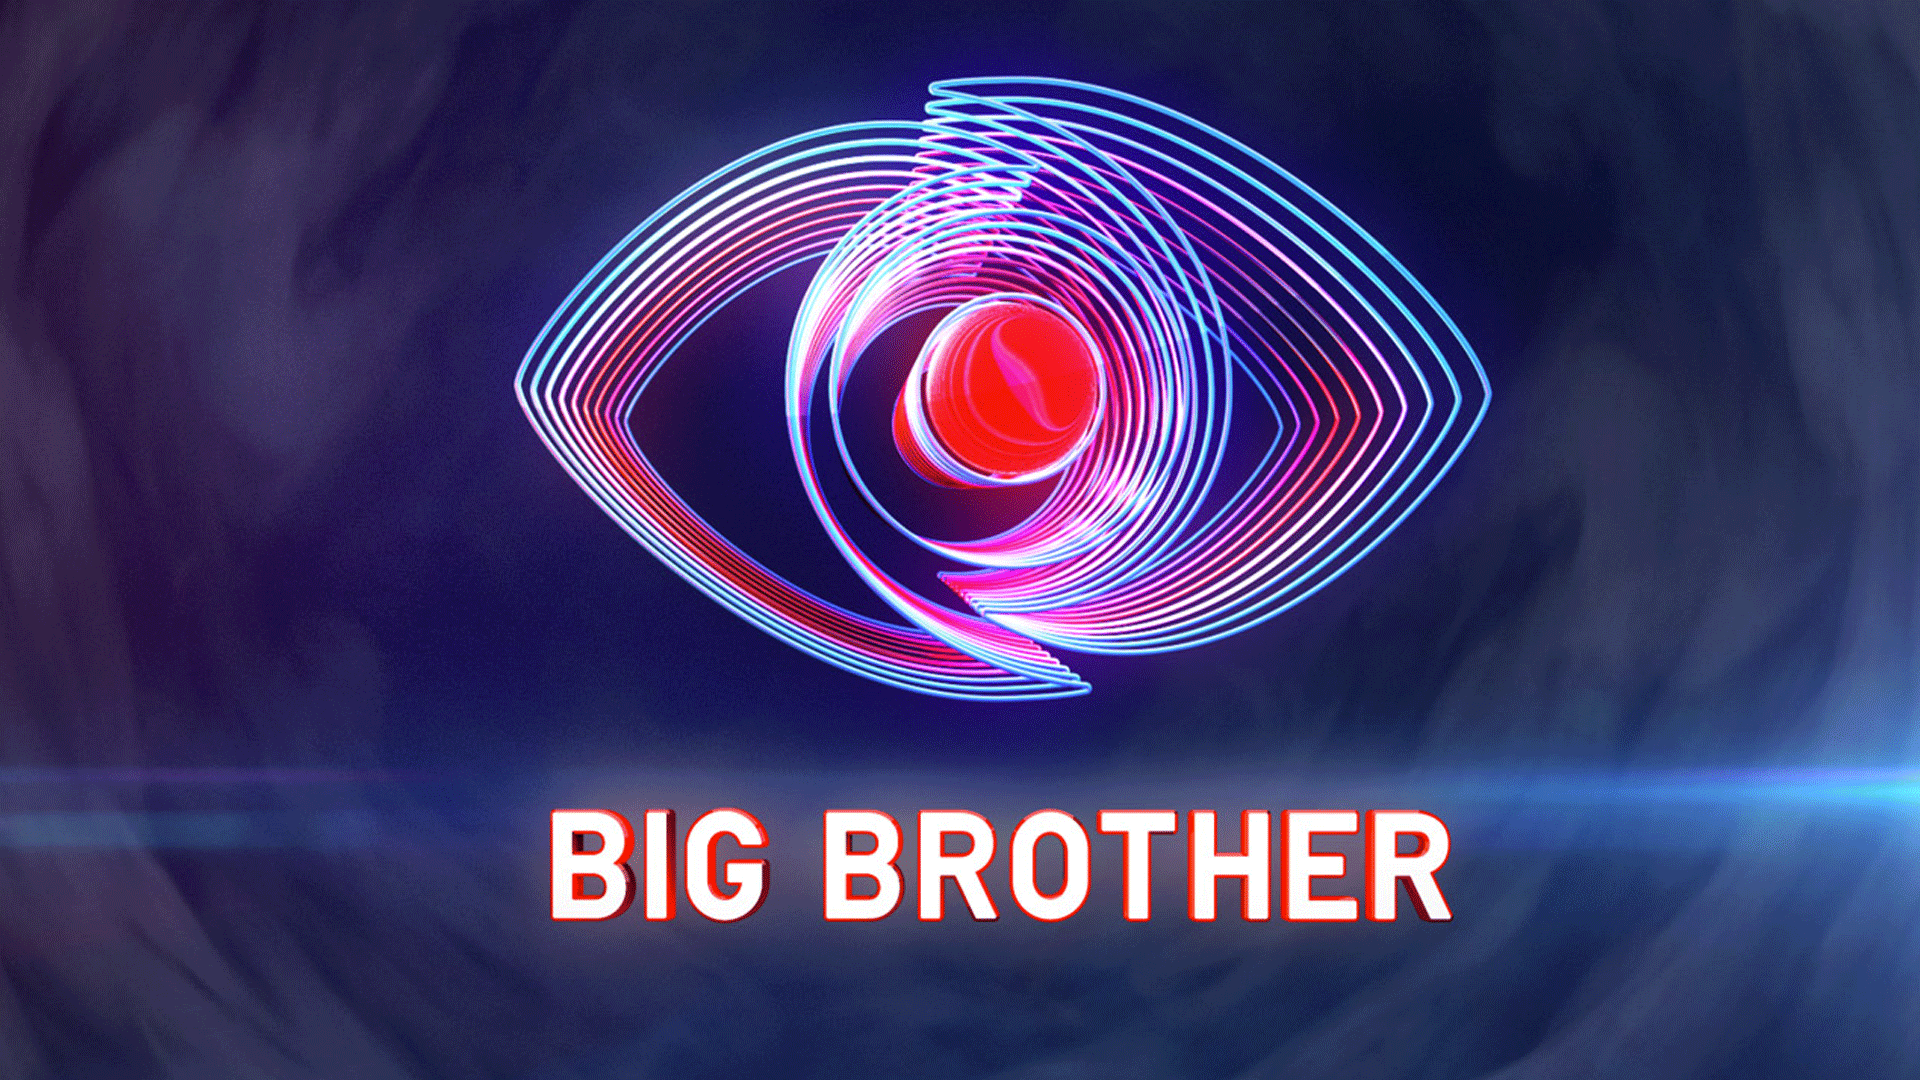 EM DIRECTO DO BIG BROTHER 2020